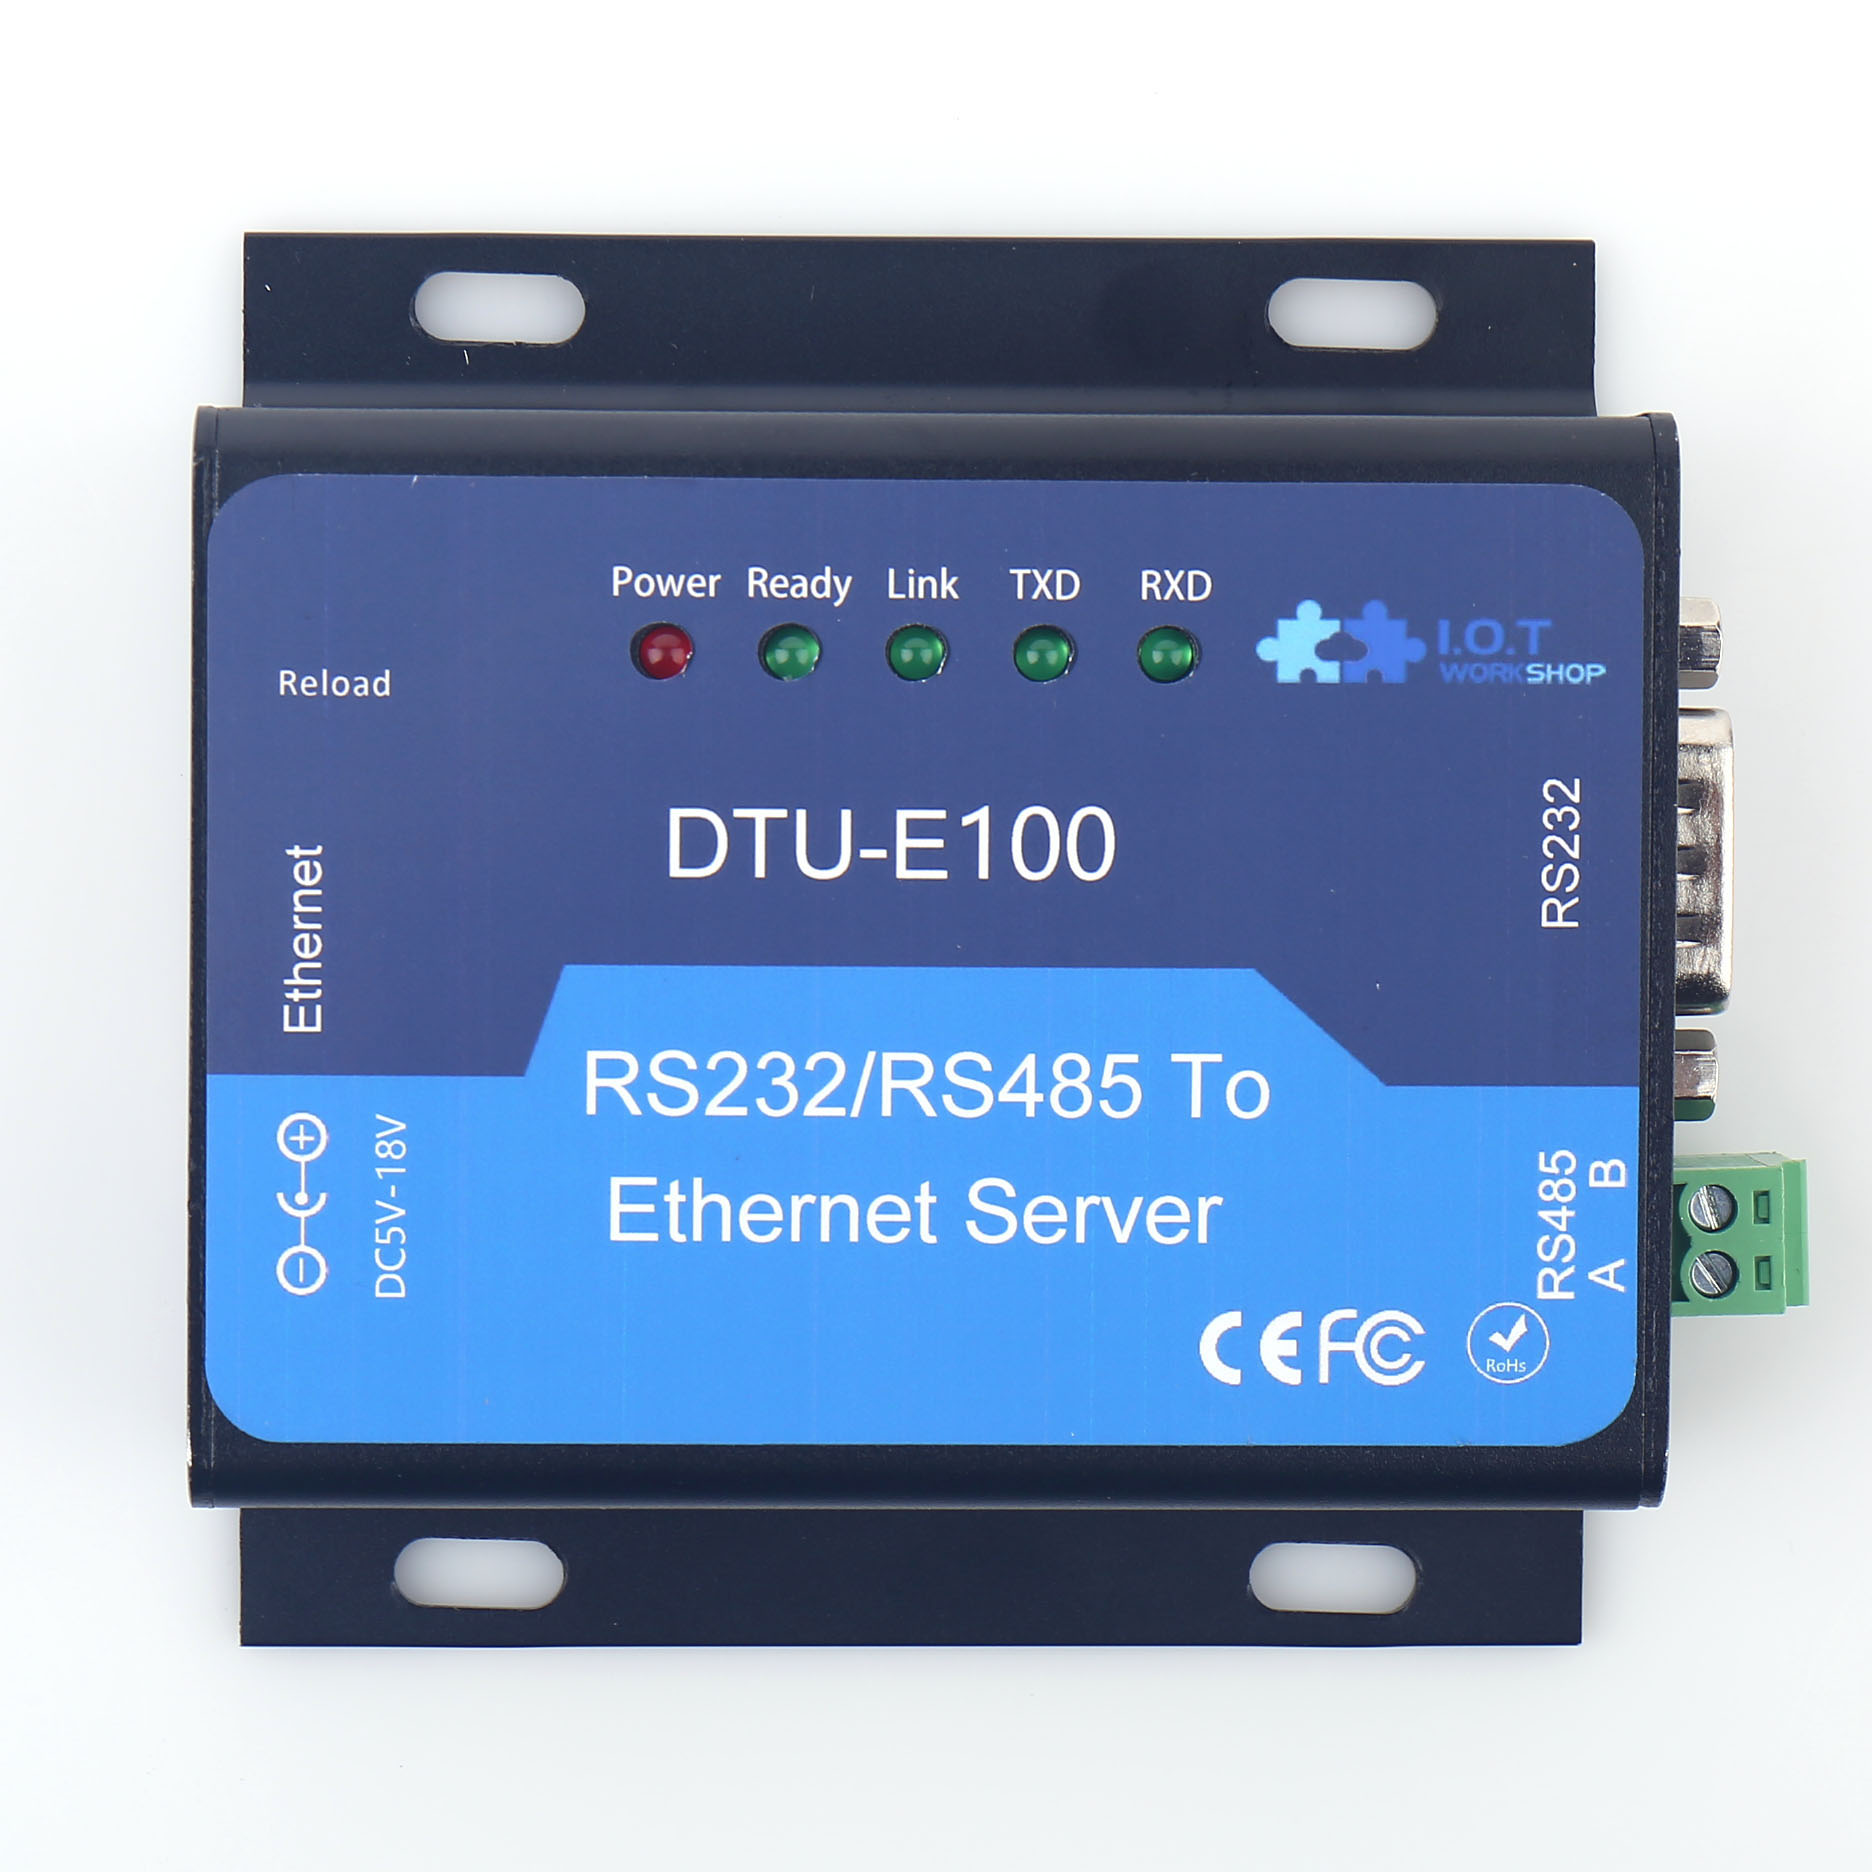 DTU Rs232/RS485 go to Ethernet Server RJ45 Converter TCP/IP 10/100 Ethernet